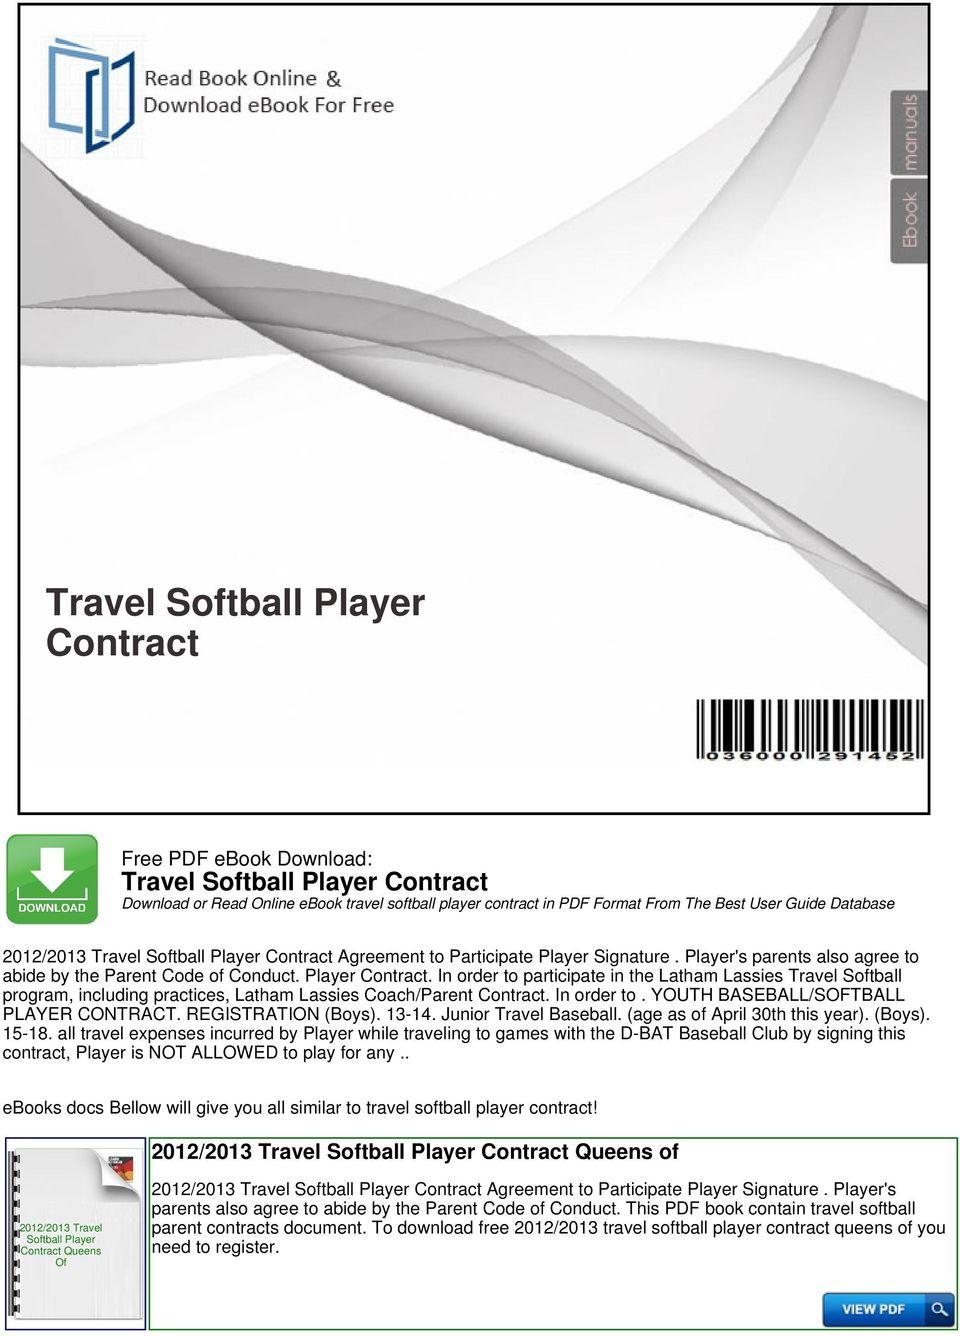 Travel softball player contract pdf youth baseballsoftball player contract registration boys fandeluxe Gallery